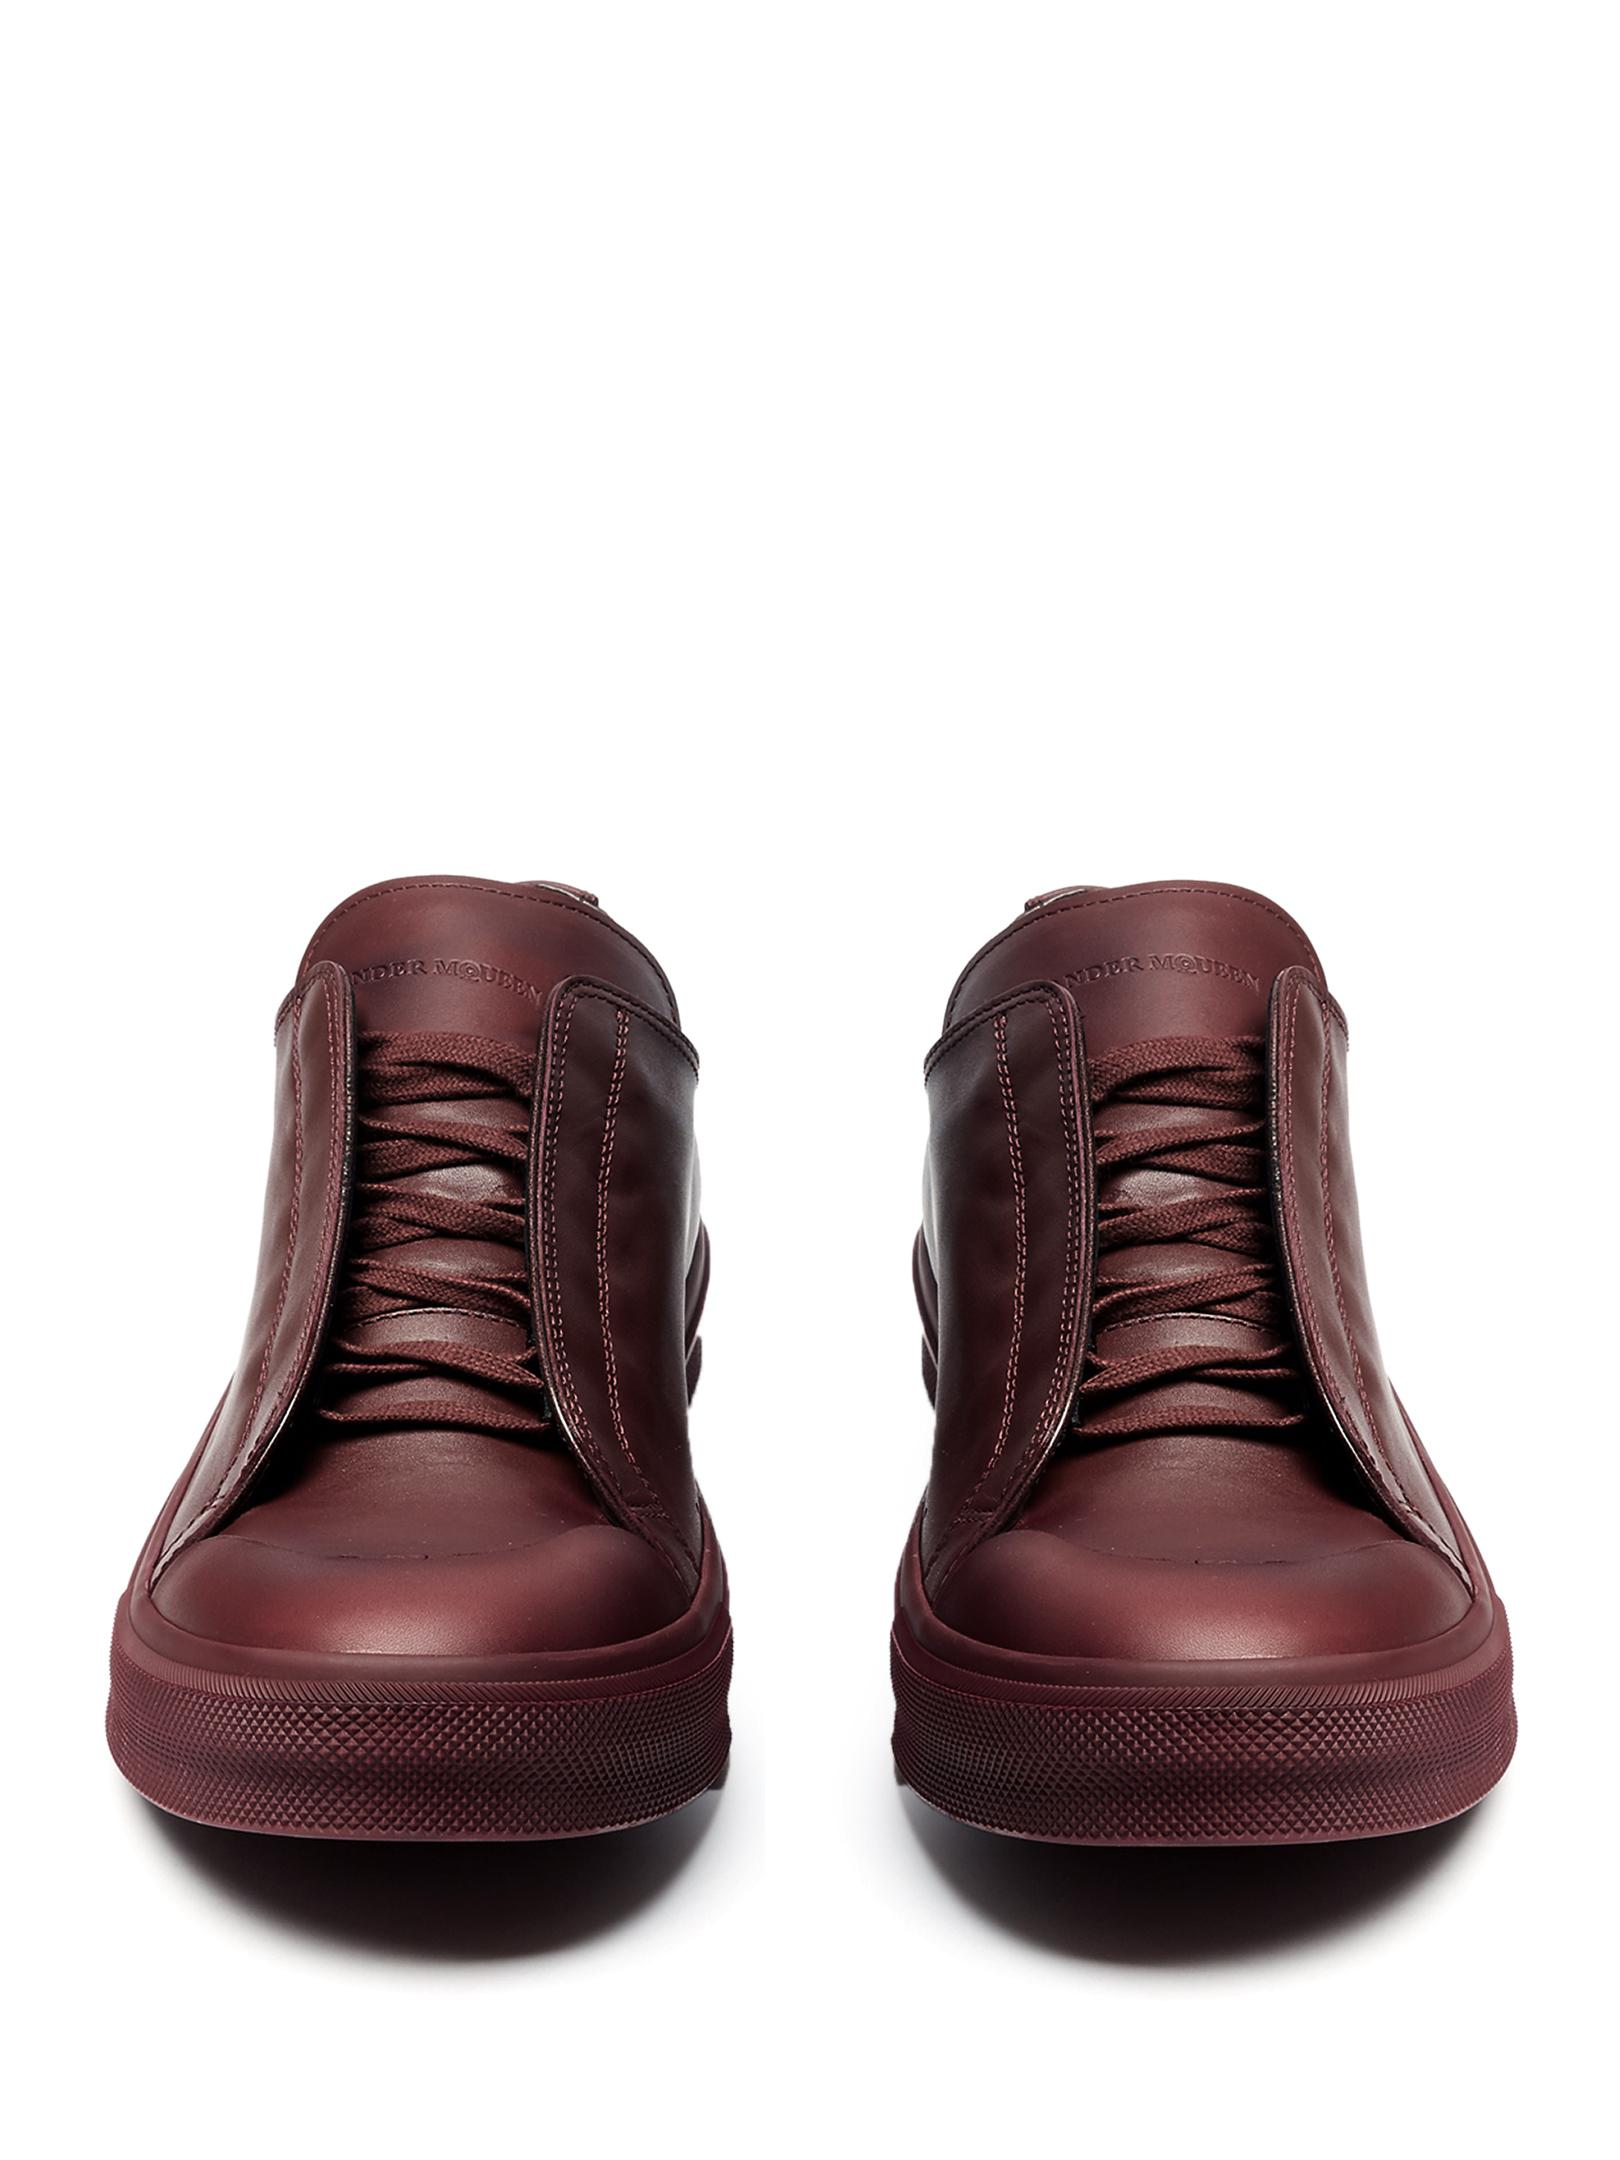 Alexander McQueen Low-top Leather Trainers for Men